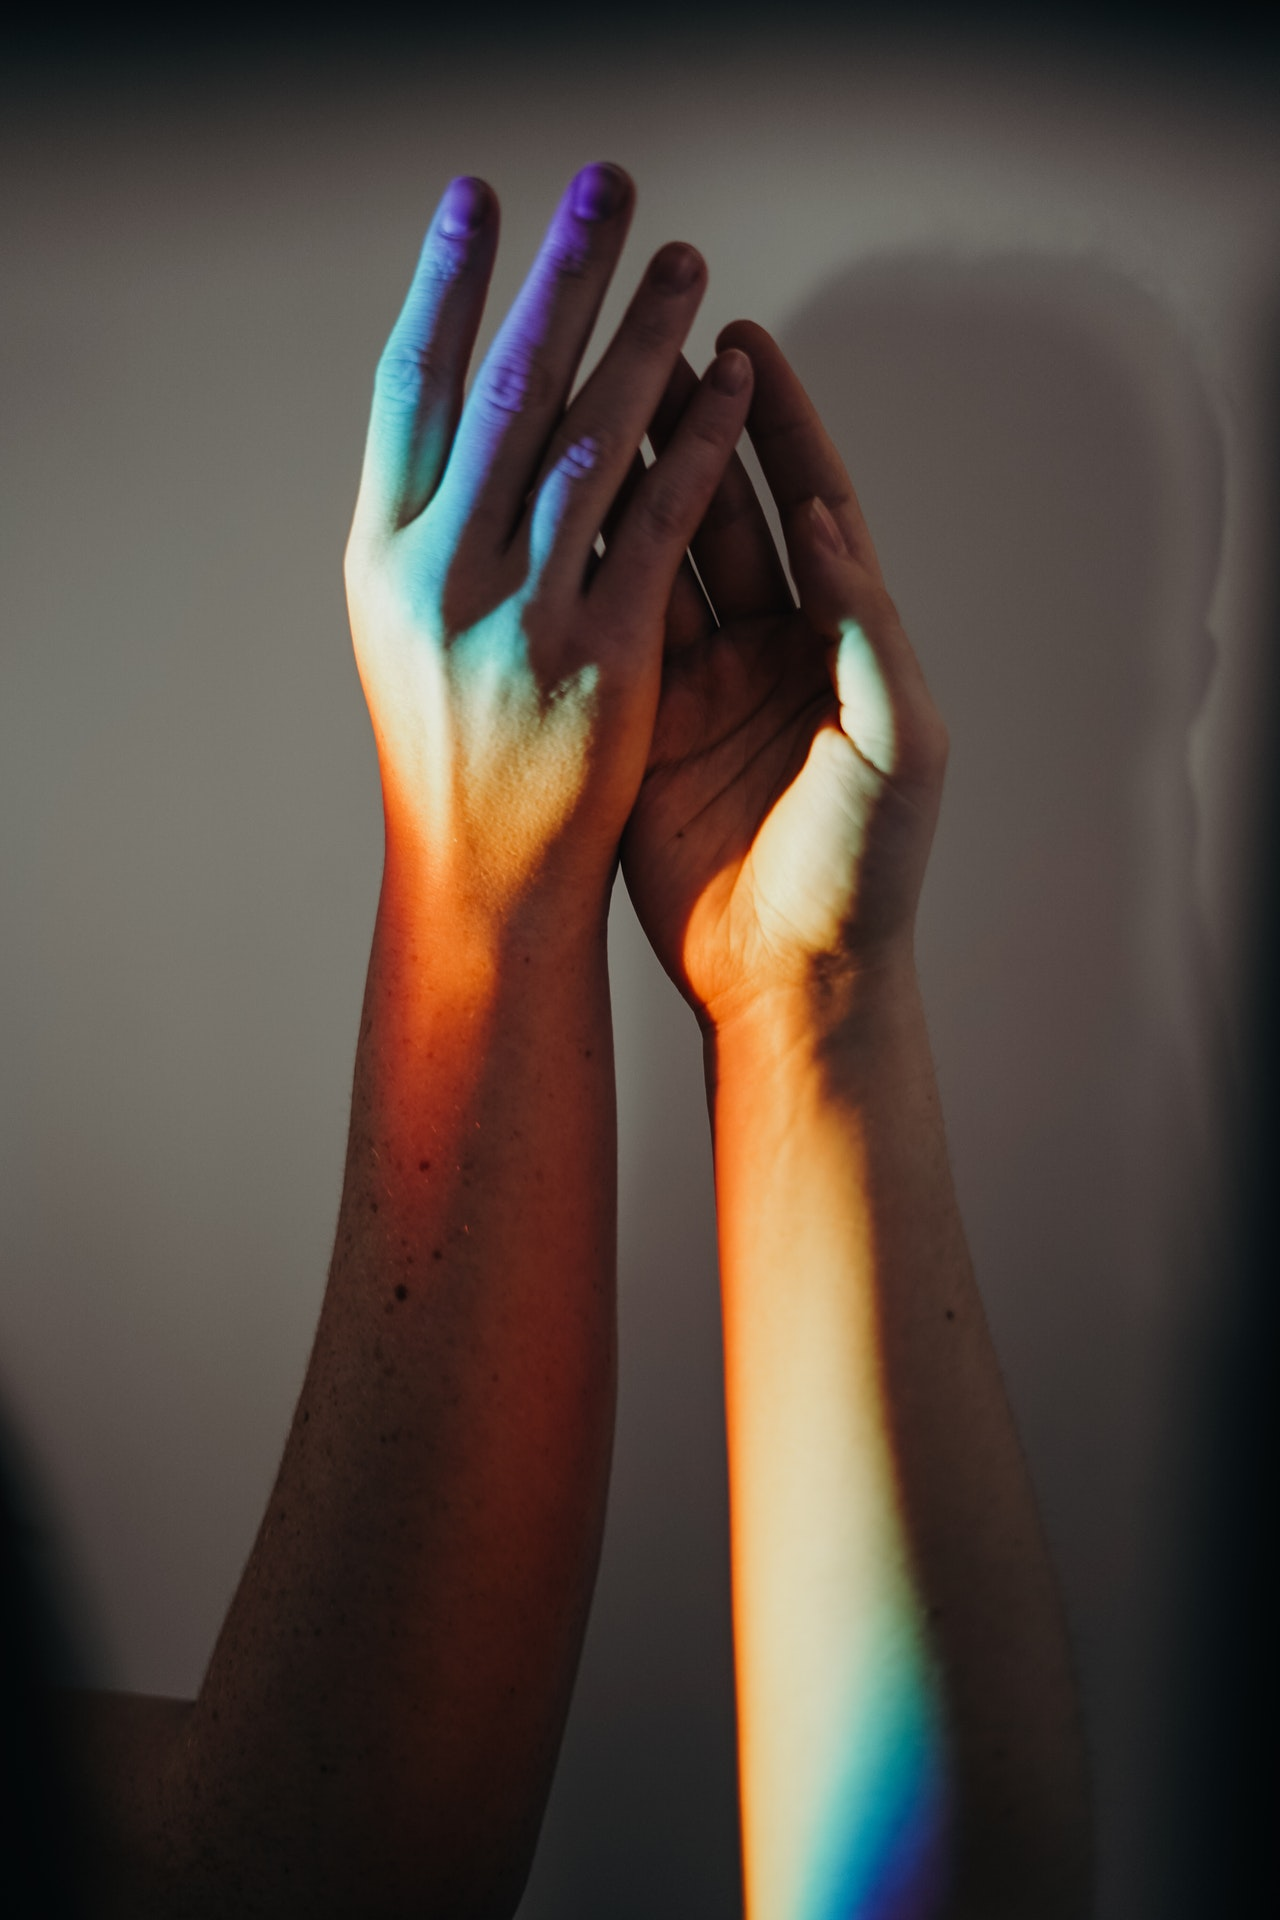 a close up photo of 2 hands holding in a shadow of LGBT rainbow color